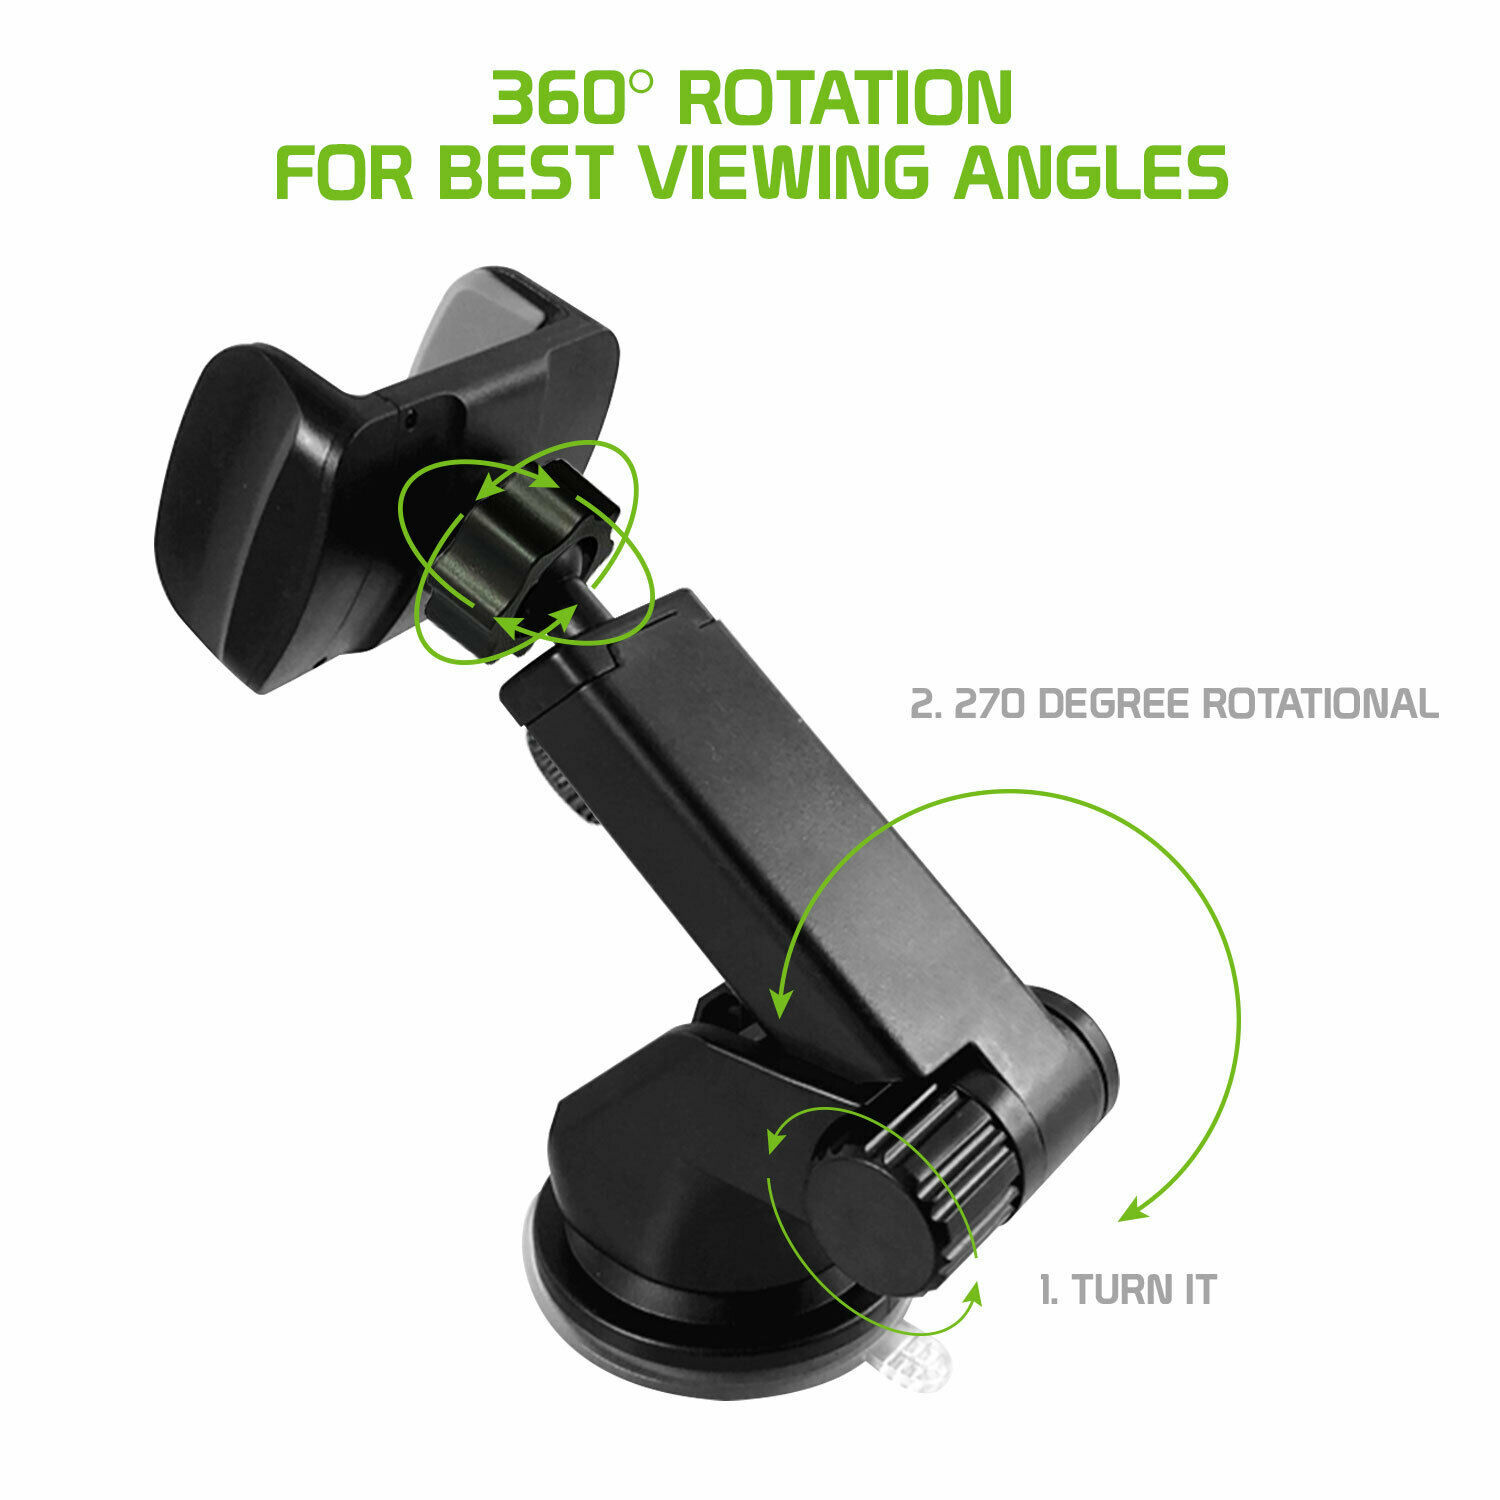 Extendable Telescopic Arm Dash / Windshield 360° Rotation Phone Holder Car Mount